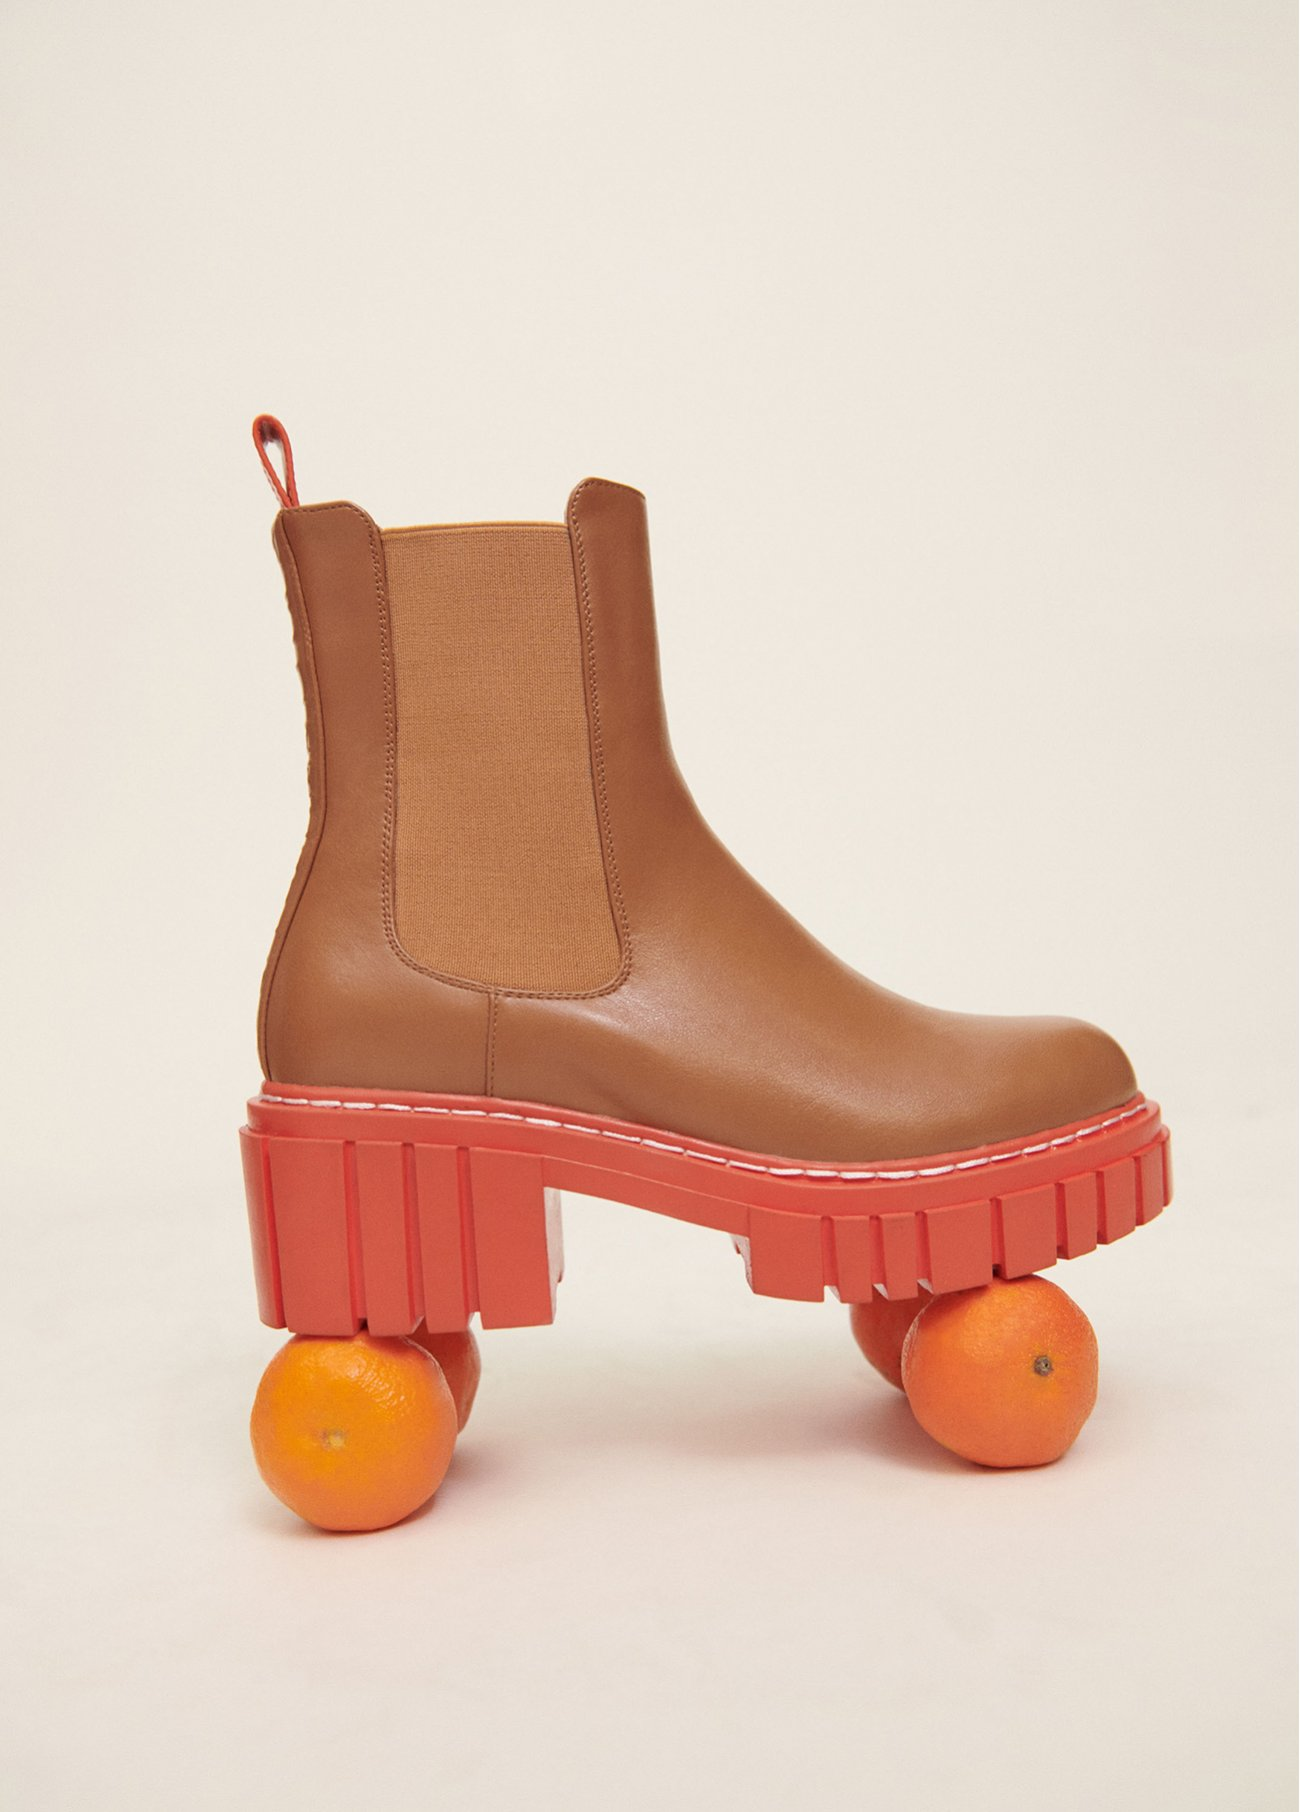 Kamel ankle boot with orange sole